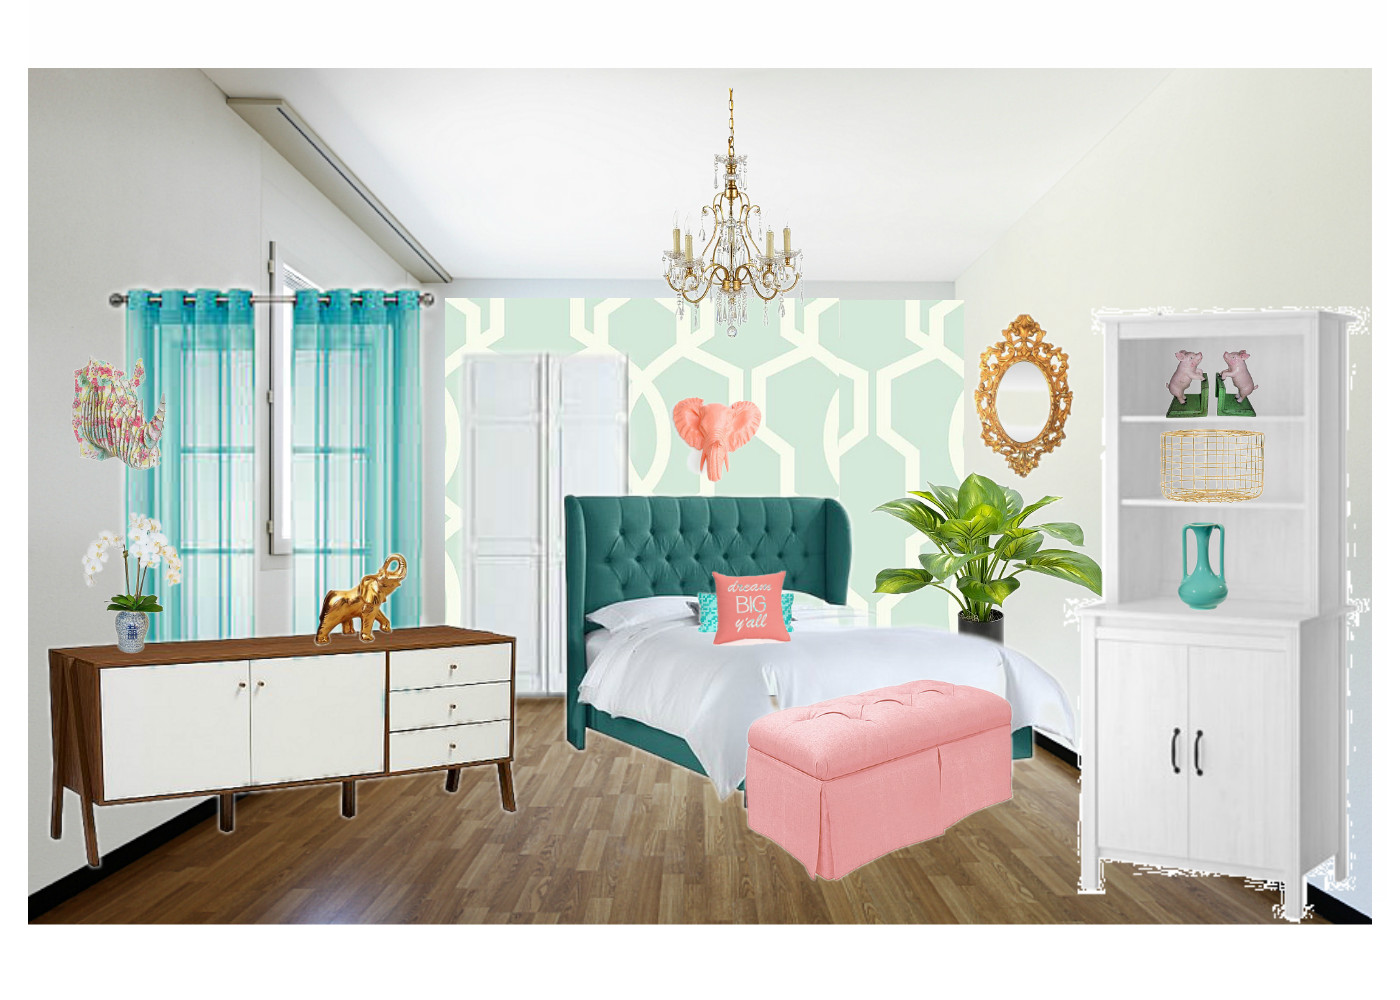 One Room Decoration girls bedroom makeover - week 2 - one room challenge™ - a purdy